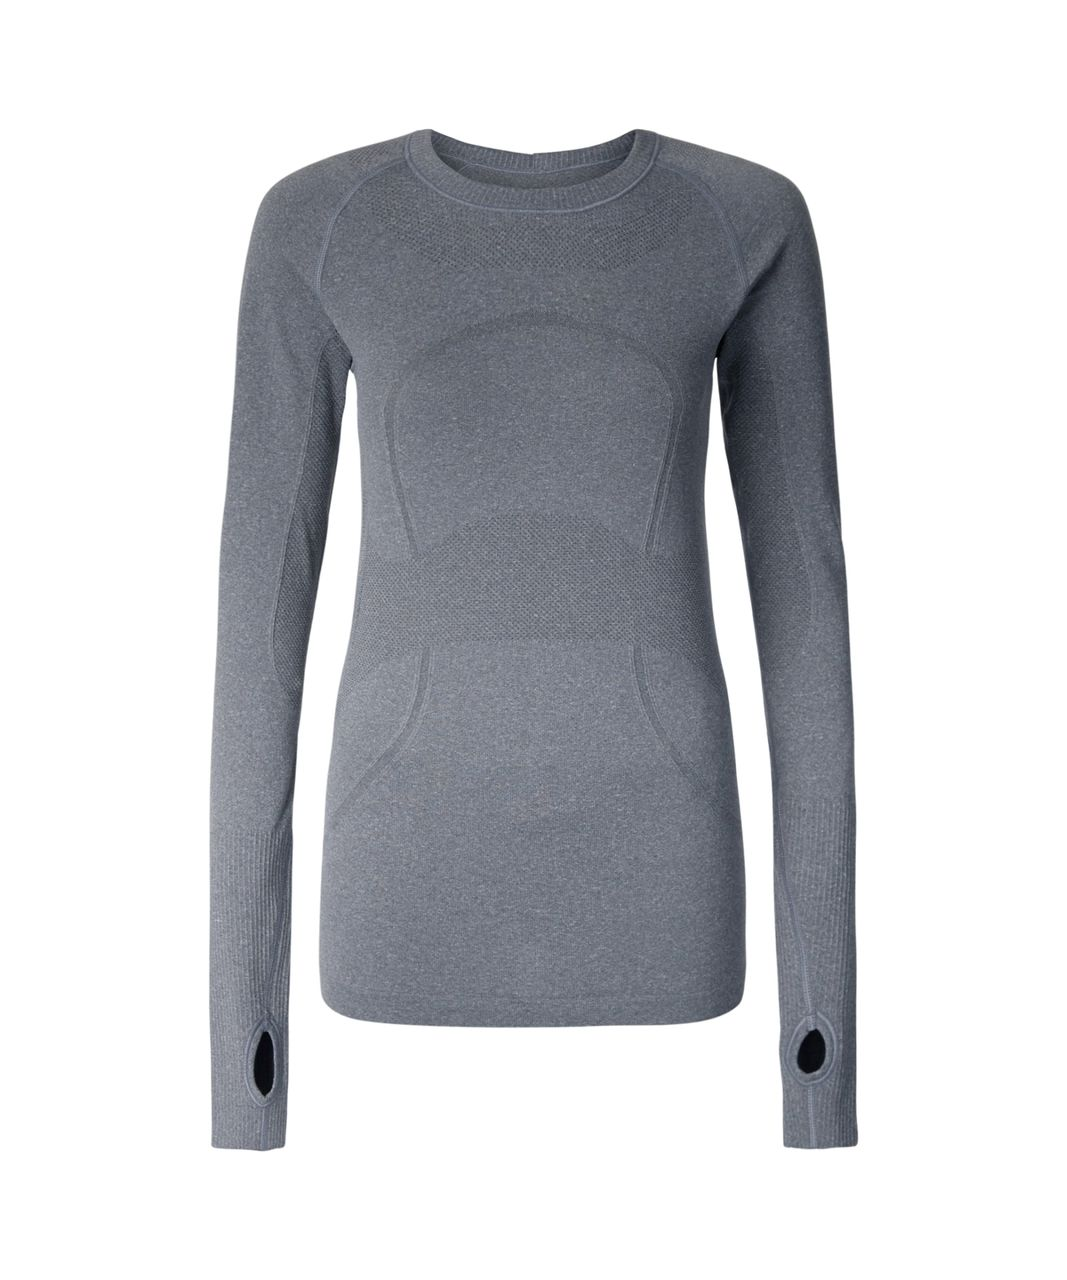 Lululemon Swiftly Tech Long Sleeve Crew - Heathered Slate (First Release)